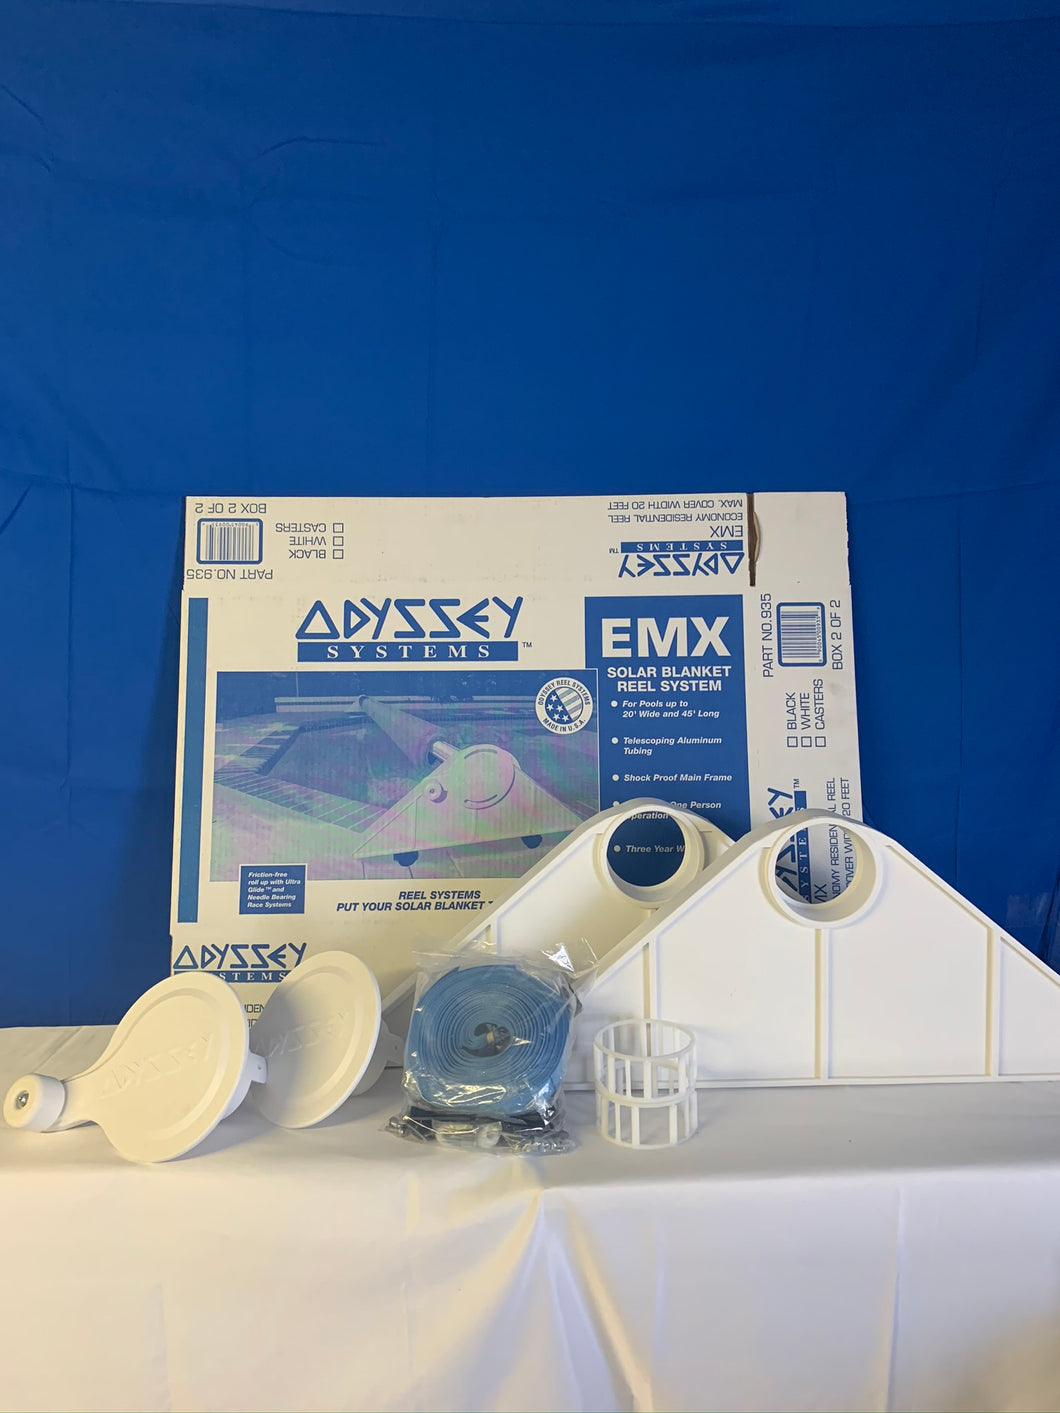 EMX Replacement Parts